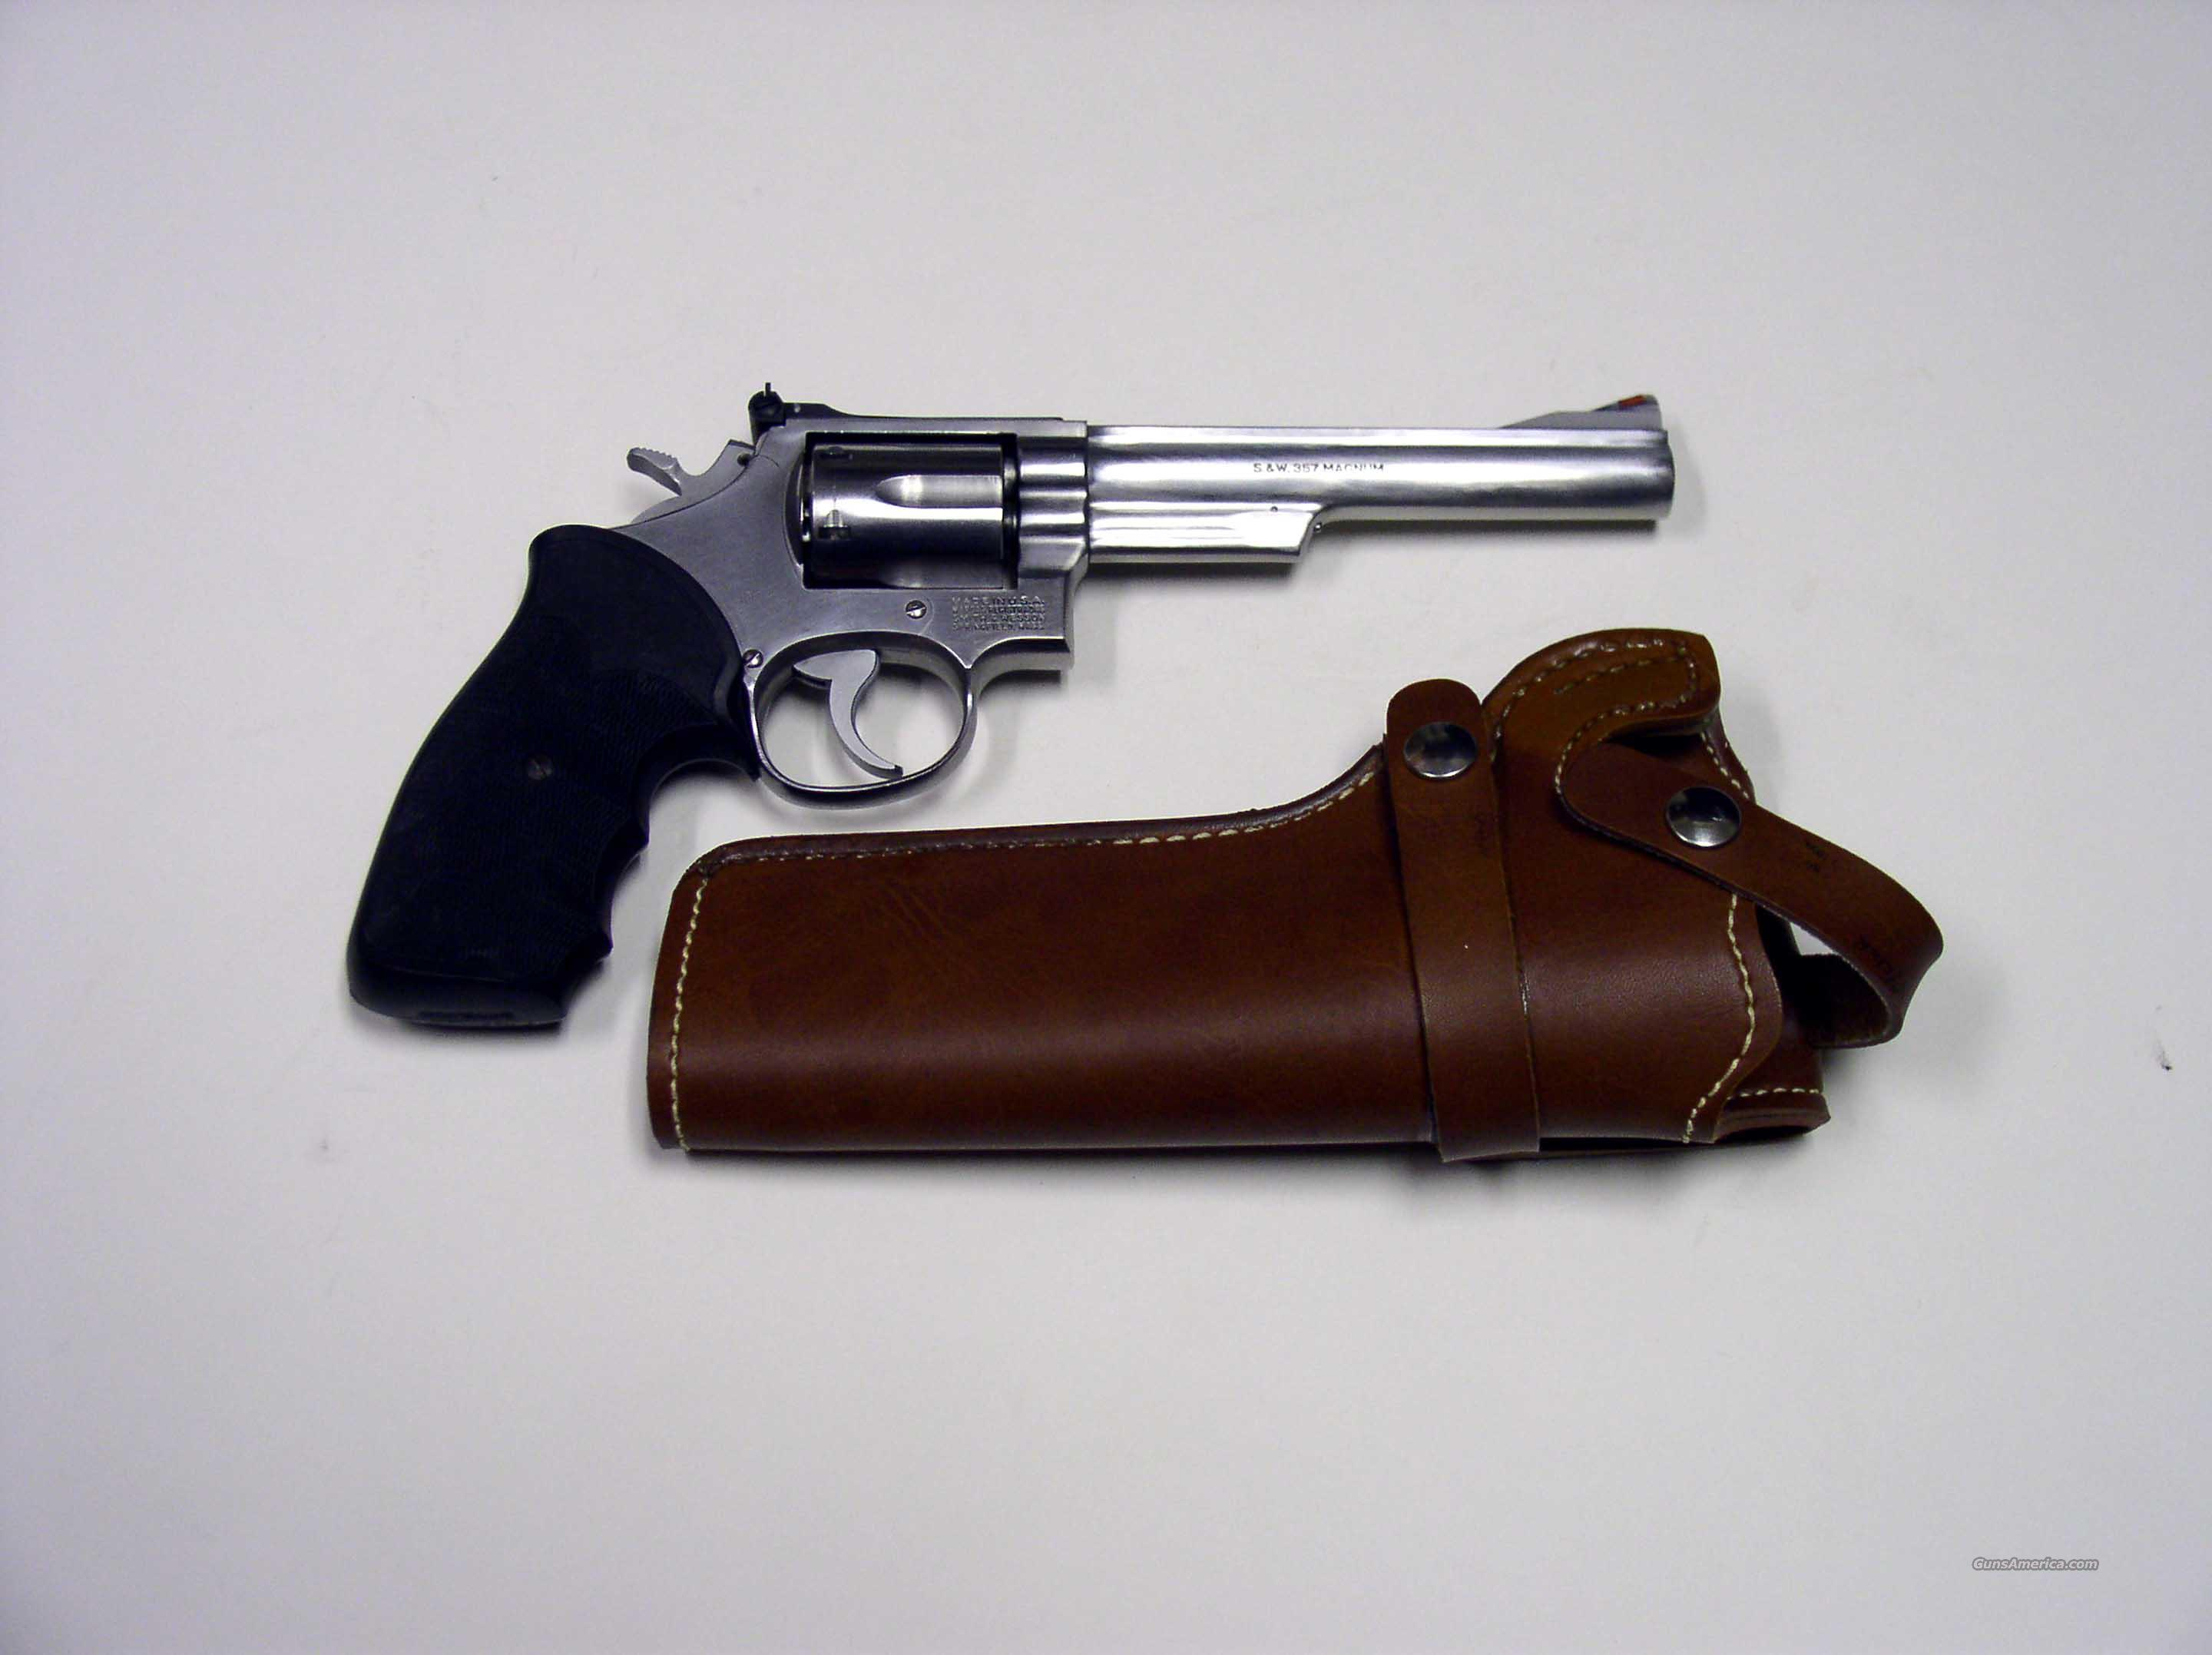 SMITH&WESSON MODEL 66-2 STAINLESS .357 MAGNUM  Guns > Pistols > Smith & Wesson Revolvers > Full Frame Revolver